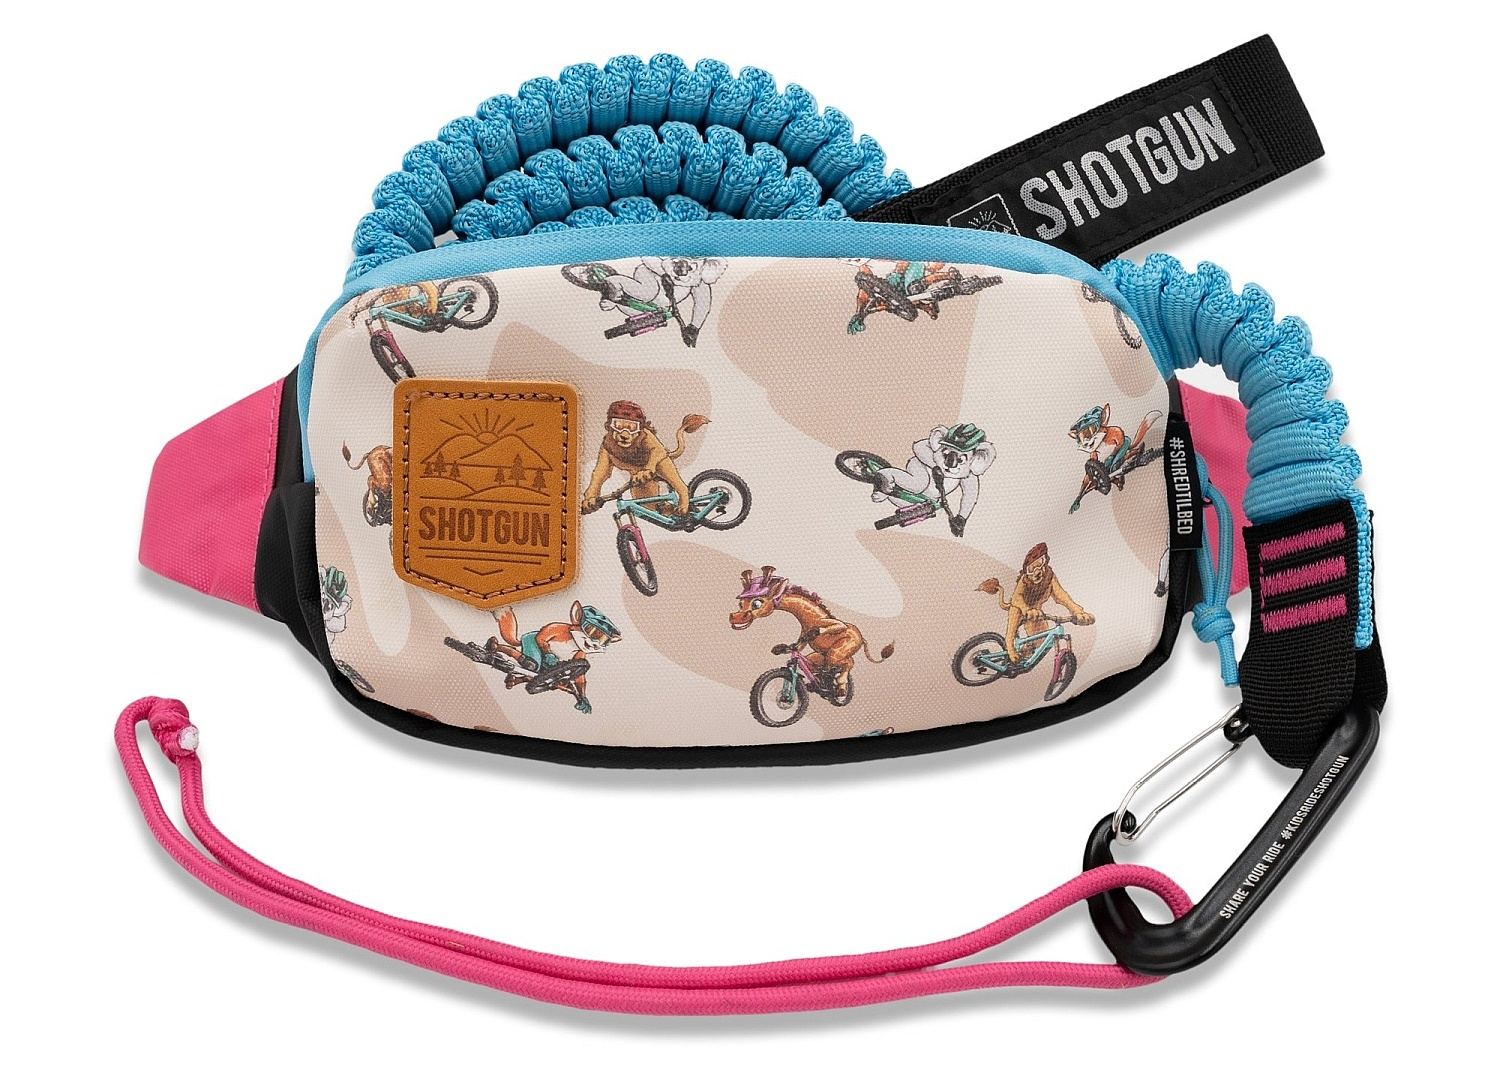 lano Shotgun MTB Tow Rope And Hip Pack - Multicolor one size